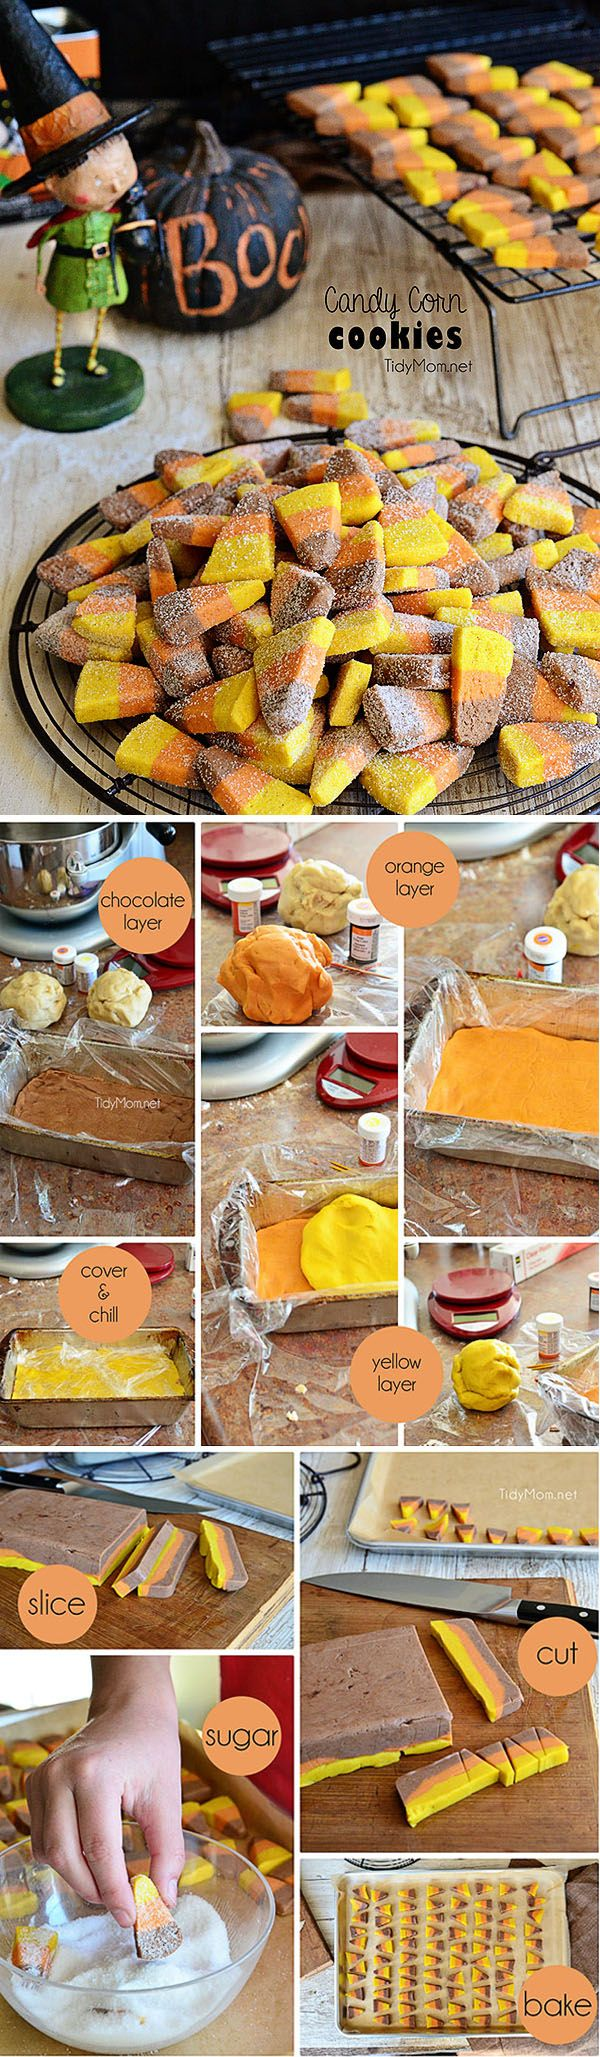 Easy Candy Corn Butter Cookie recipe and tutorial at TidyMom.net